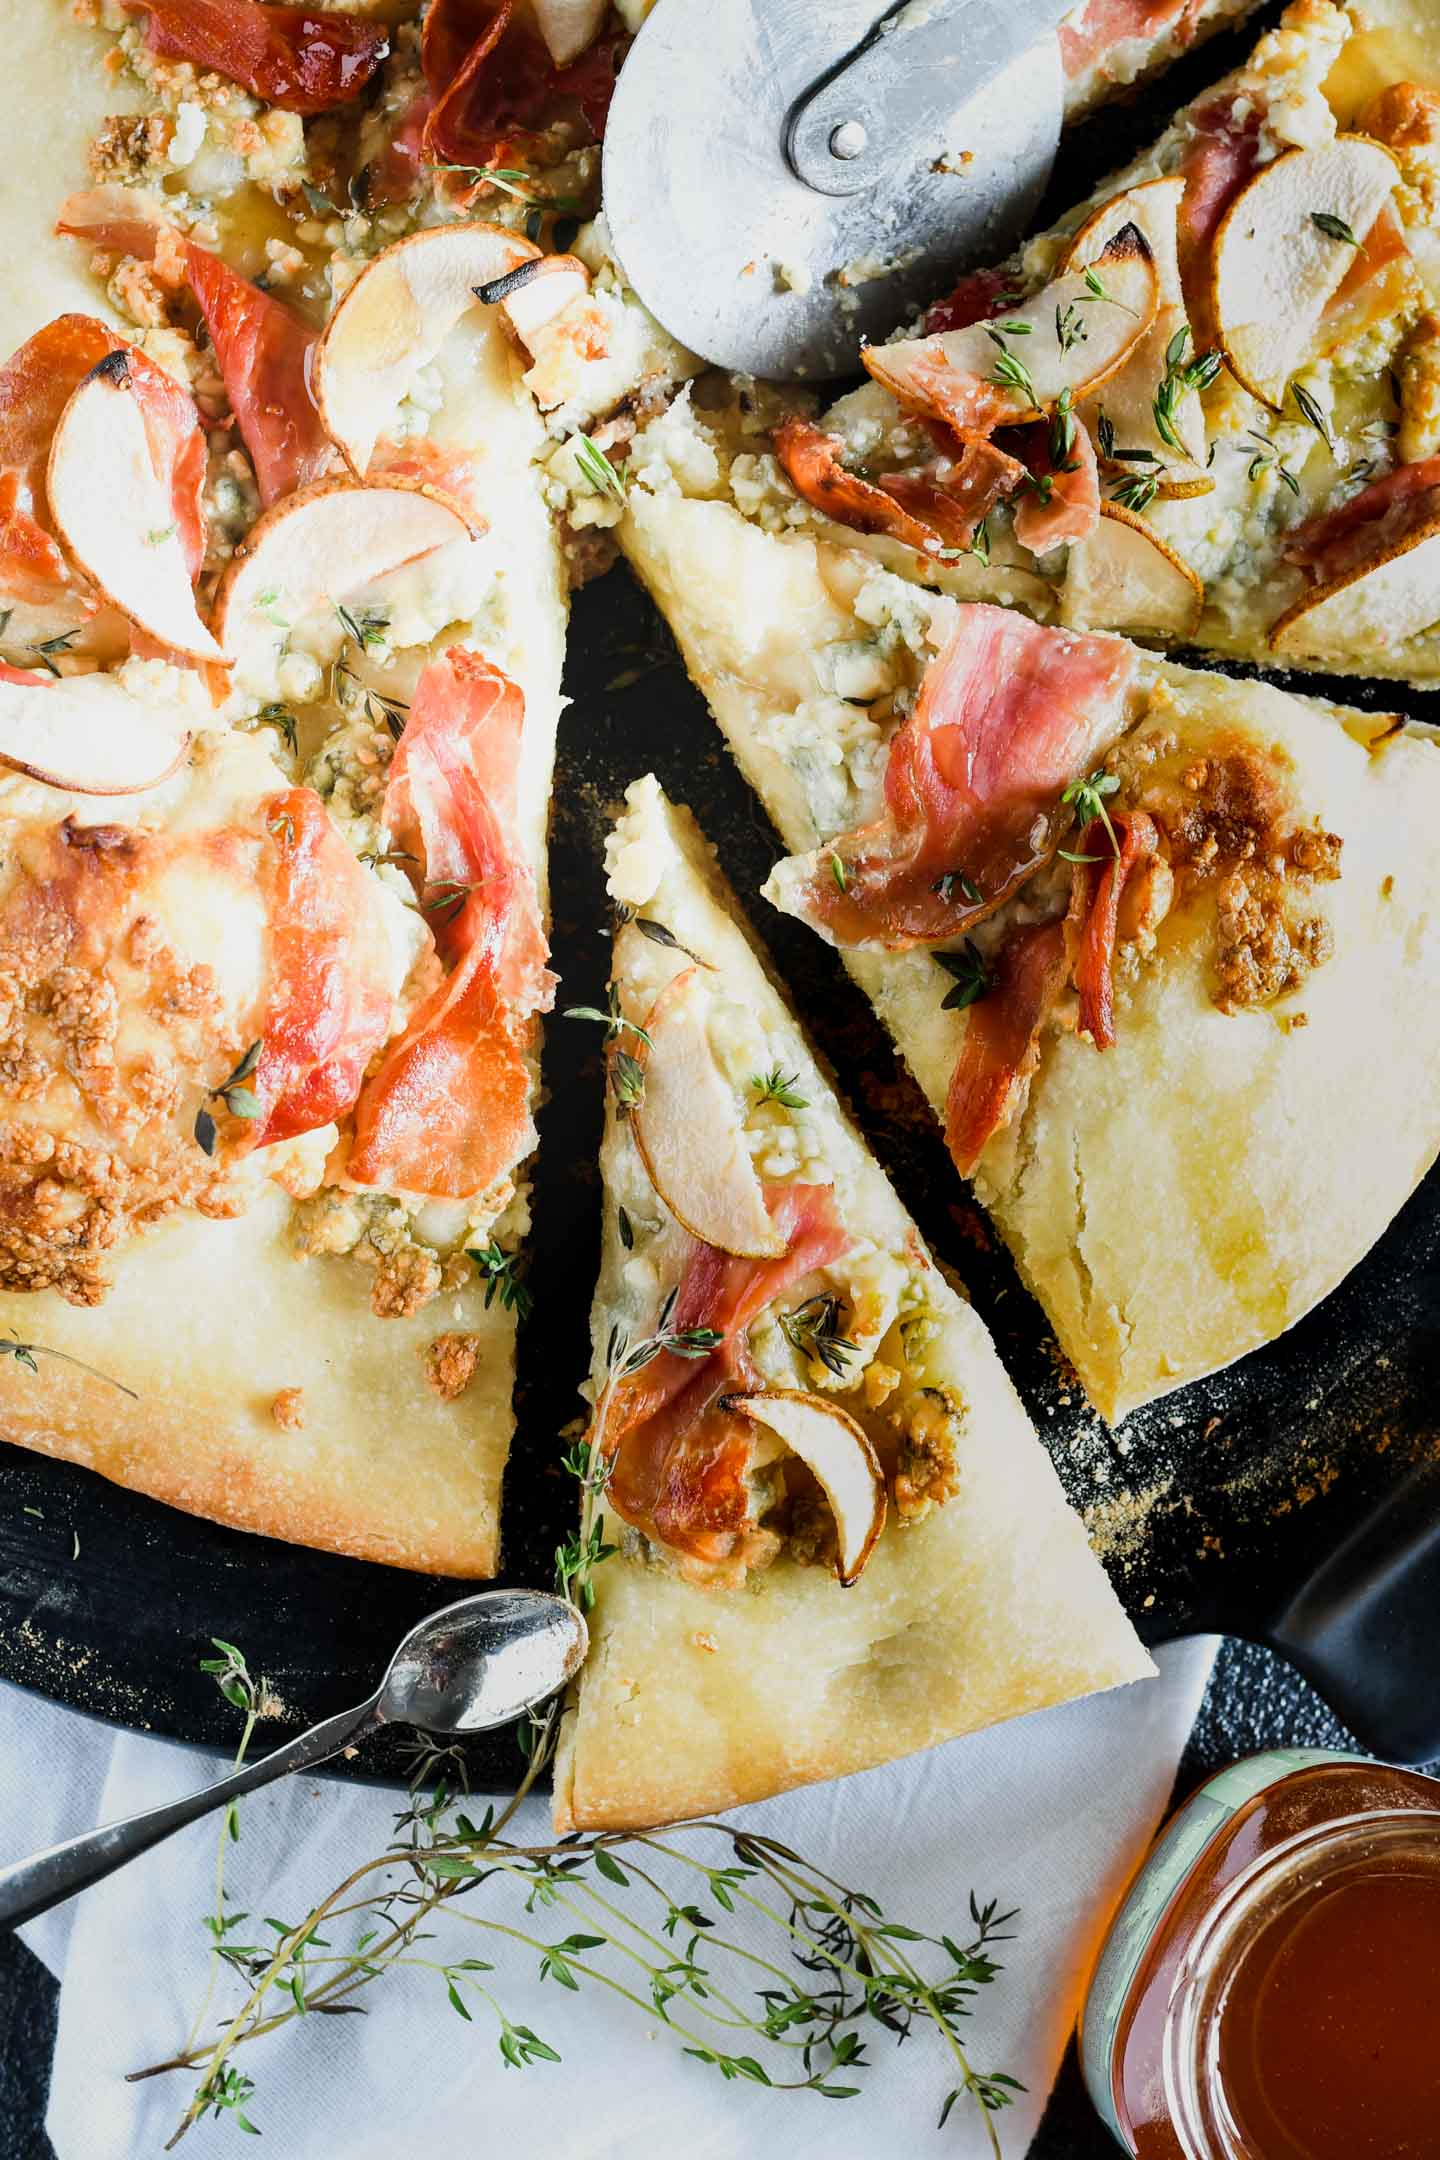 This grilled proscuitto, pear and blue cheese pizza has an extra crisp crust giving you a great end of summer meal.